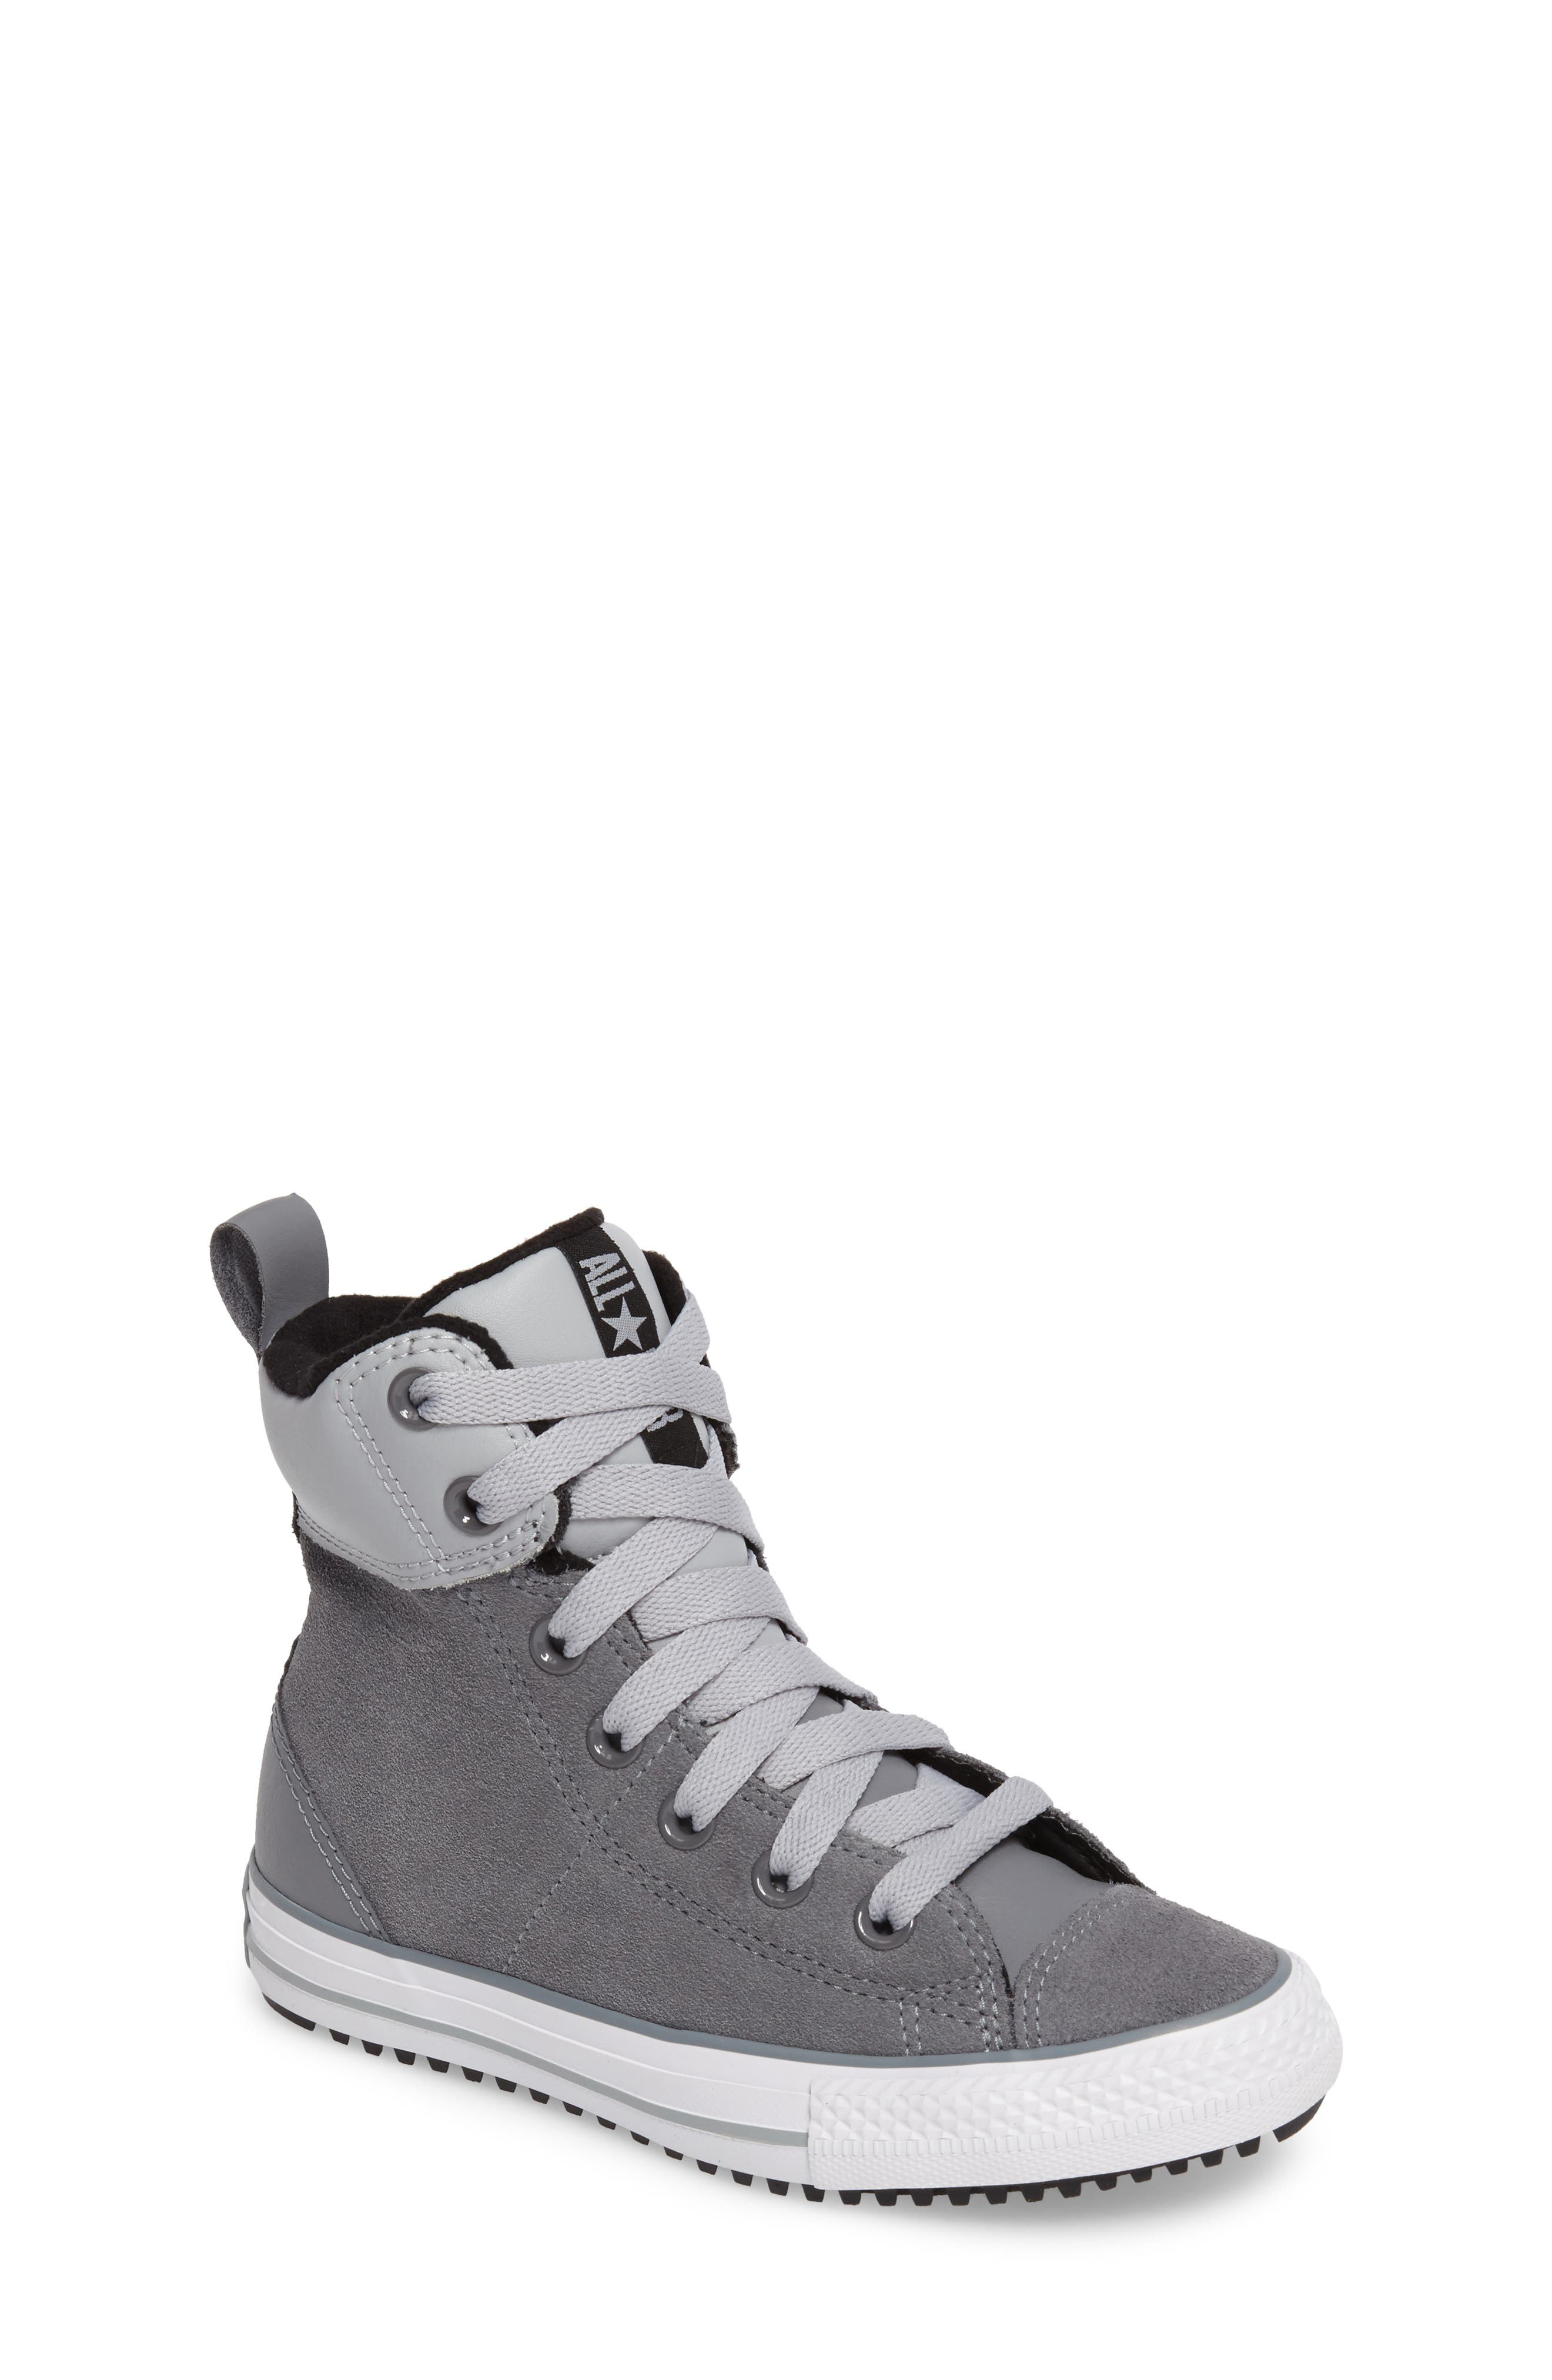 Chuck Taylor<sup>®</sup> All Star<sup>®</sup> Asphalt Sneaker Boot,                         Main,                         color, 039